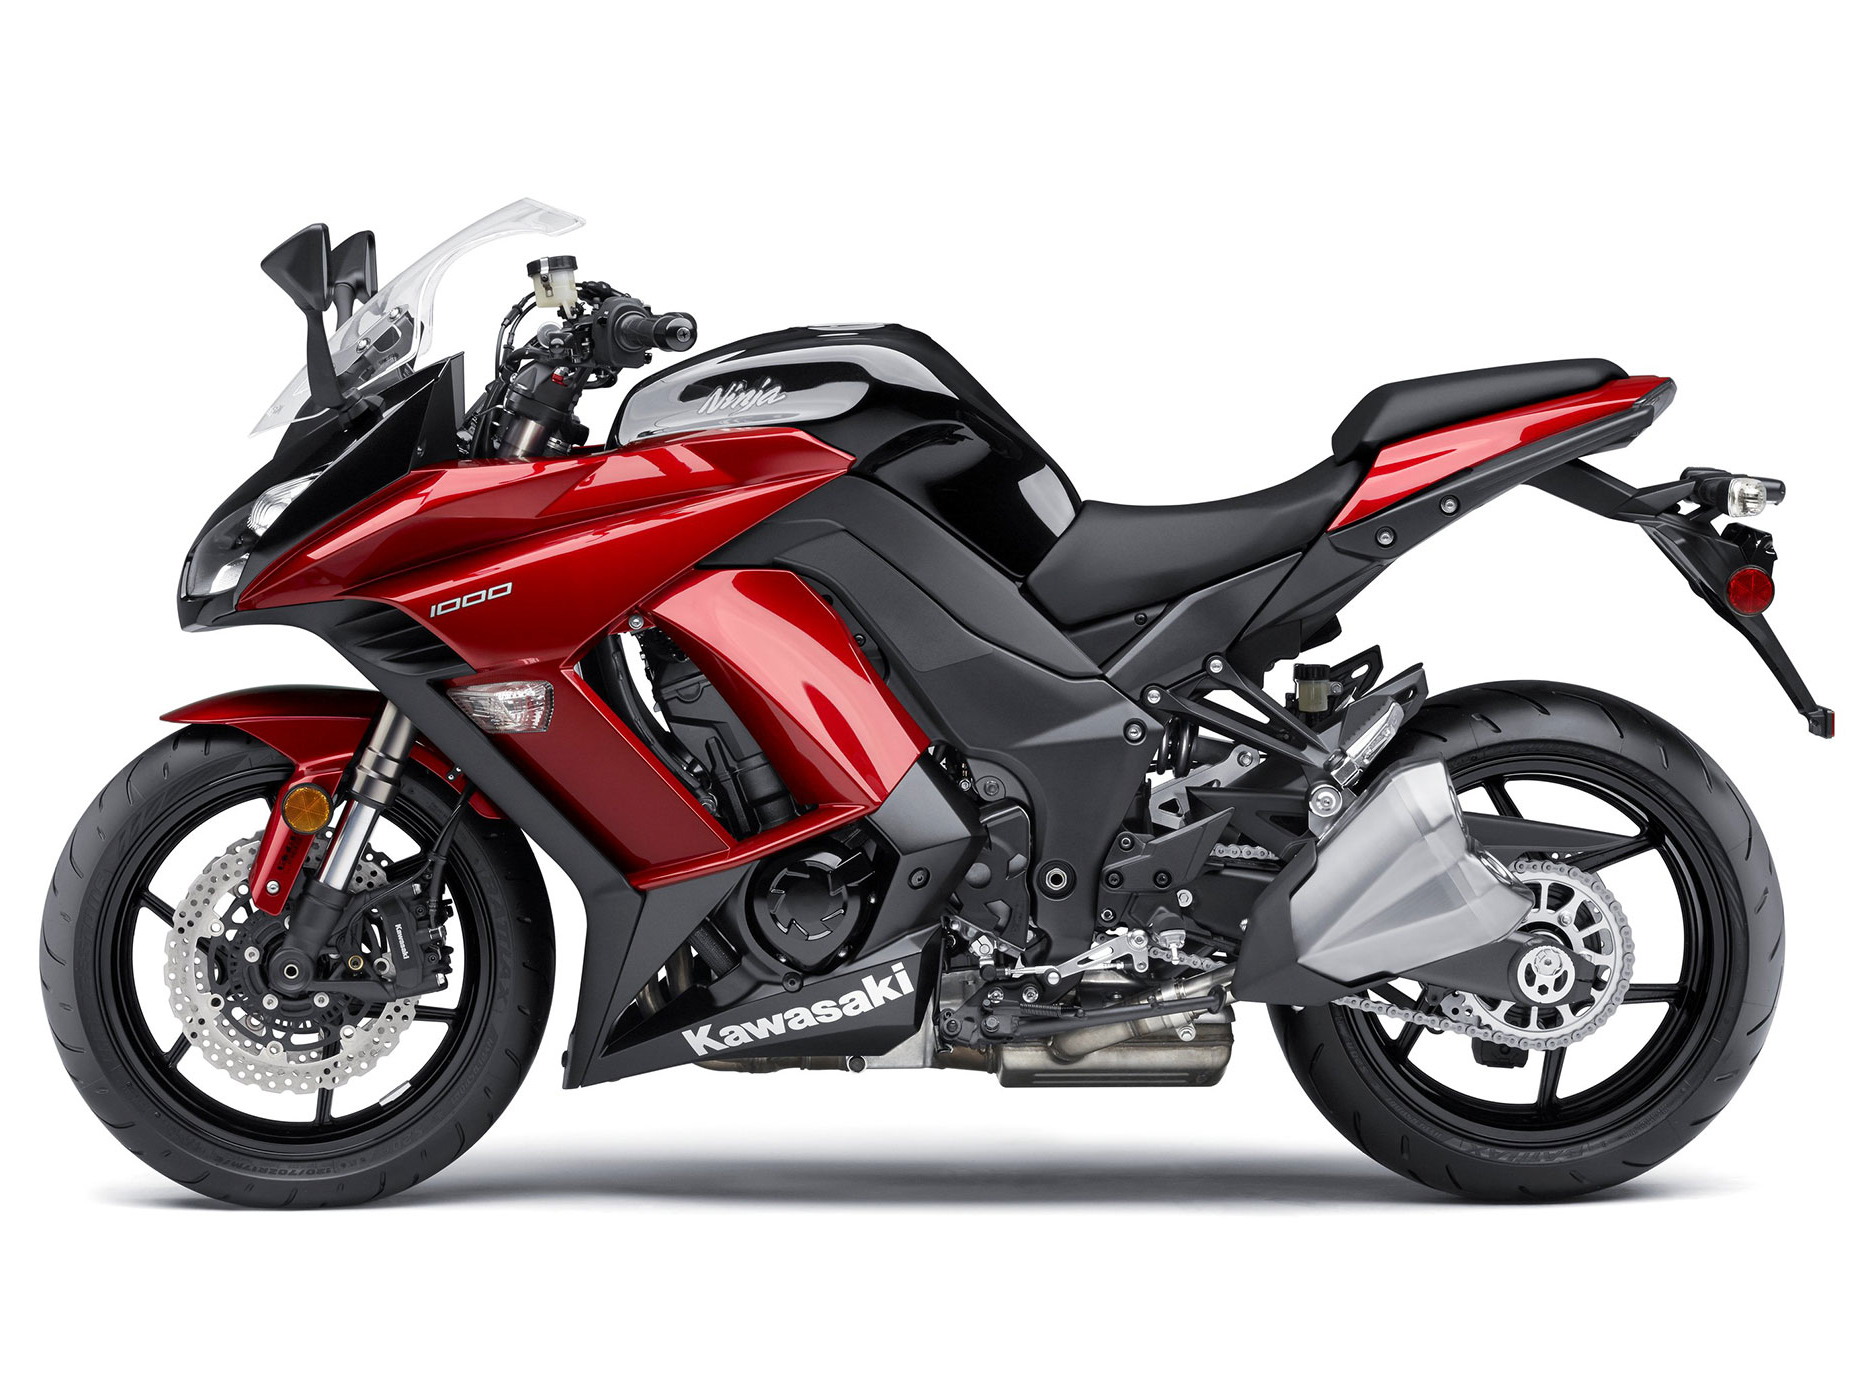 This Particular Motorcycle Takes The Best Performance Of Ninja Series And Fine Tuned Entire Package To Make It More Suitable For Long Tourers